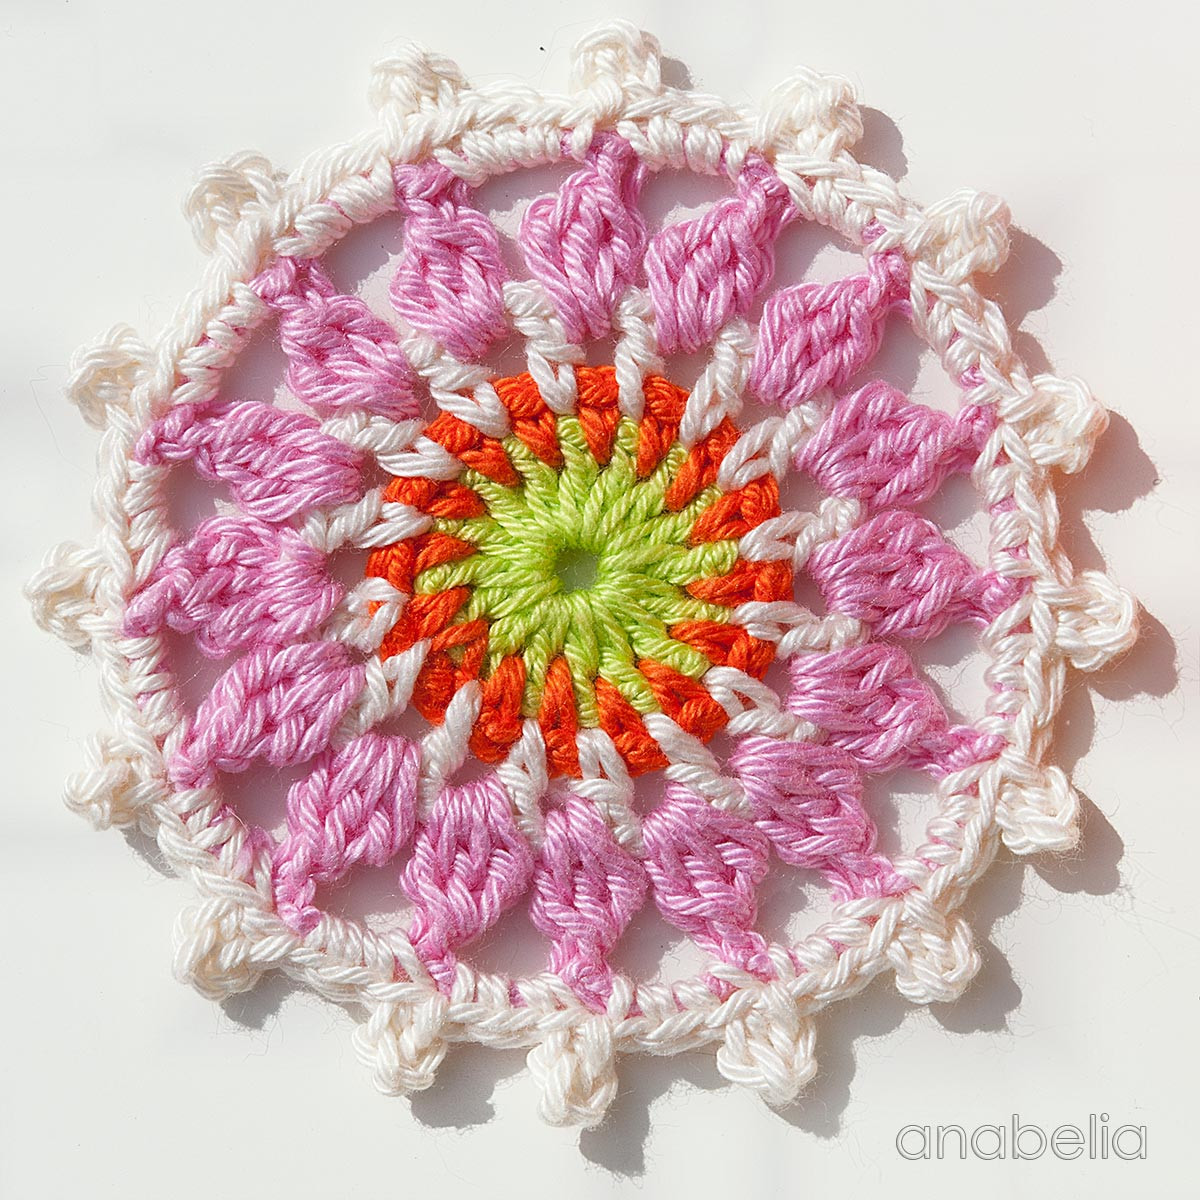 Crochet Motifs Lovely Anabelia Craft Design How to Decorate A Summer Bag with Of Charming 47 Ideas Crochet Motifs